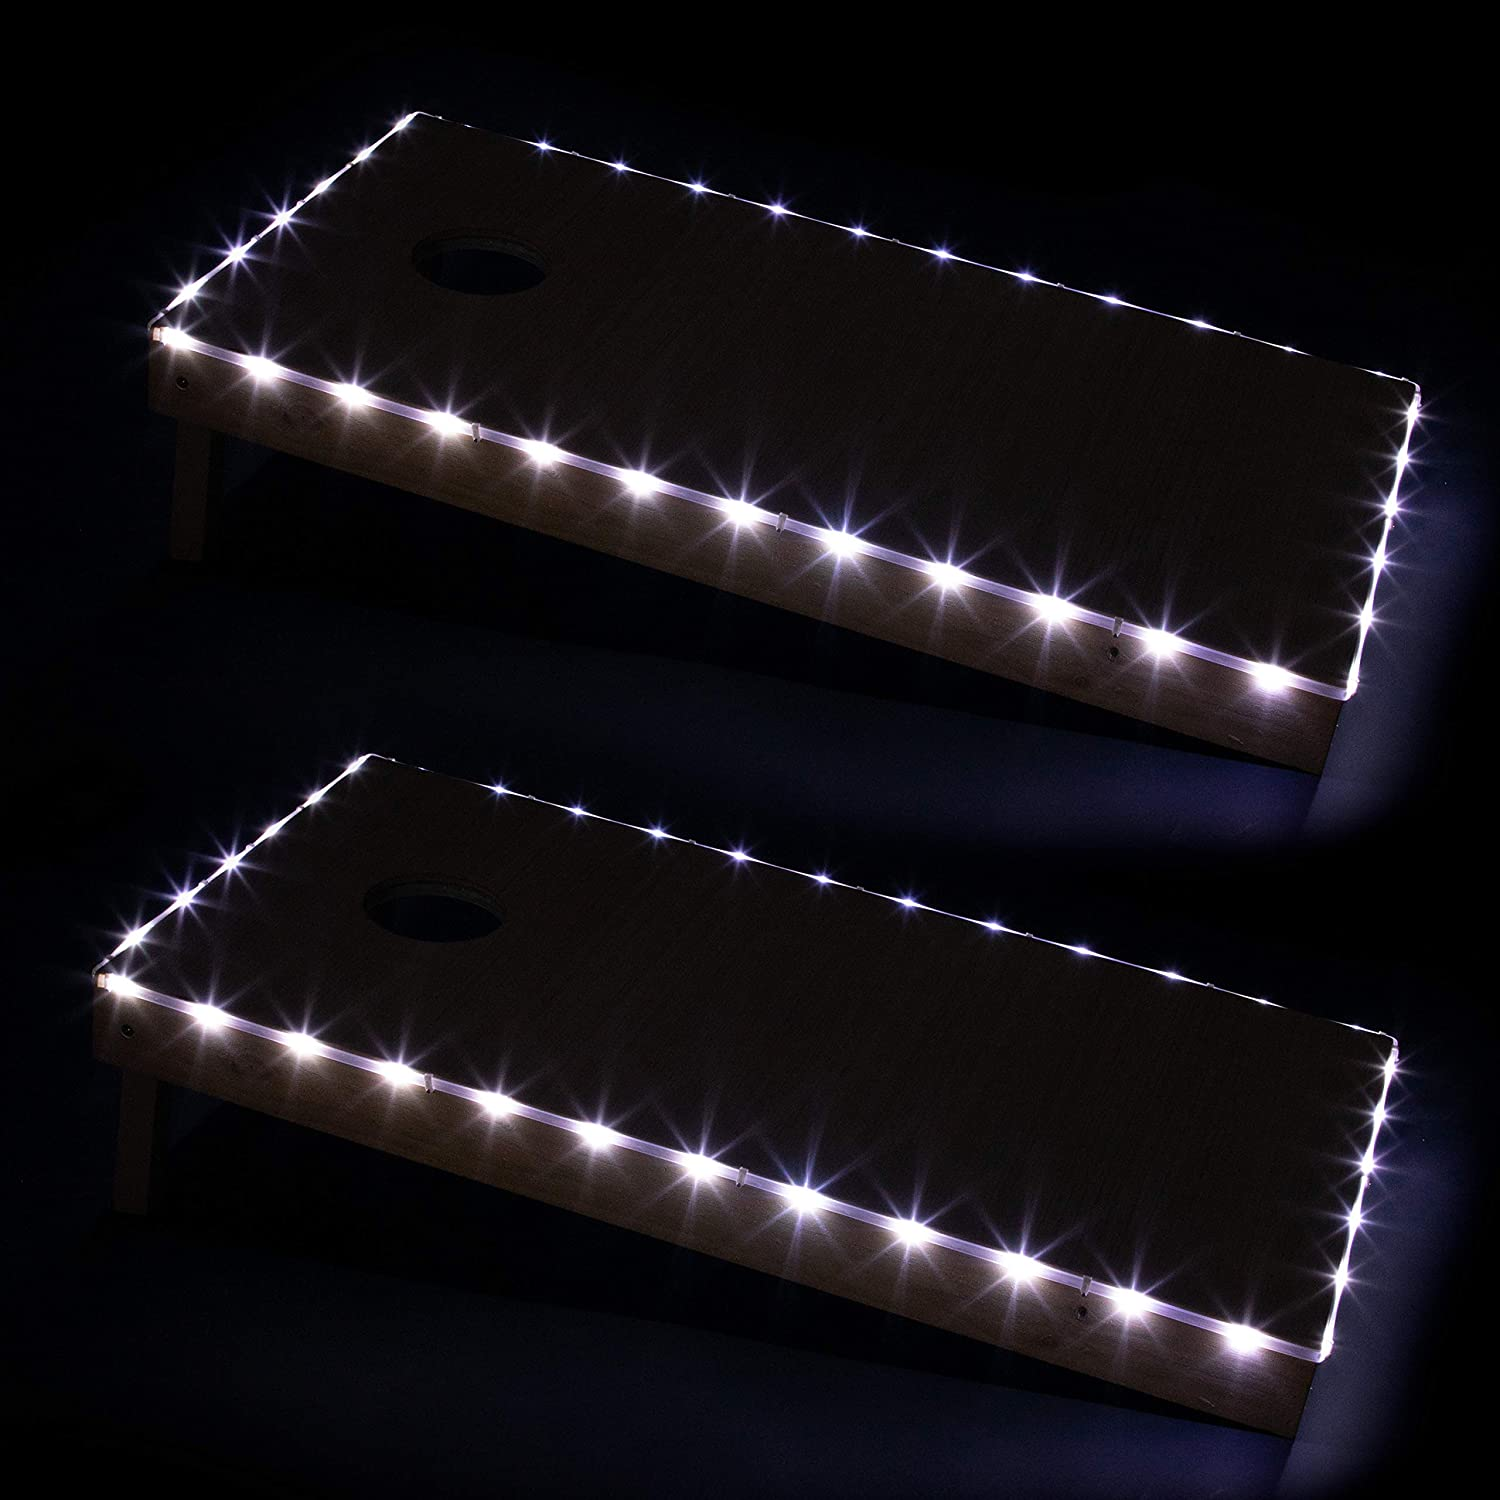 LED Cornhole Board Lights - Multiple Colors to Choose from - Corn Hole Edge Lighting Kit for Playing at Night